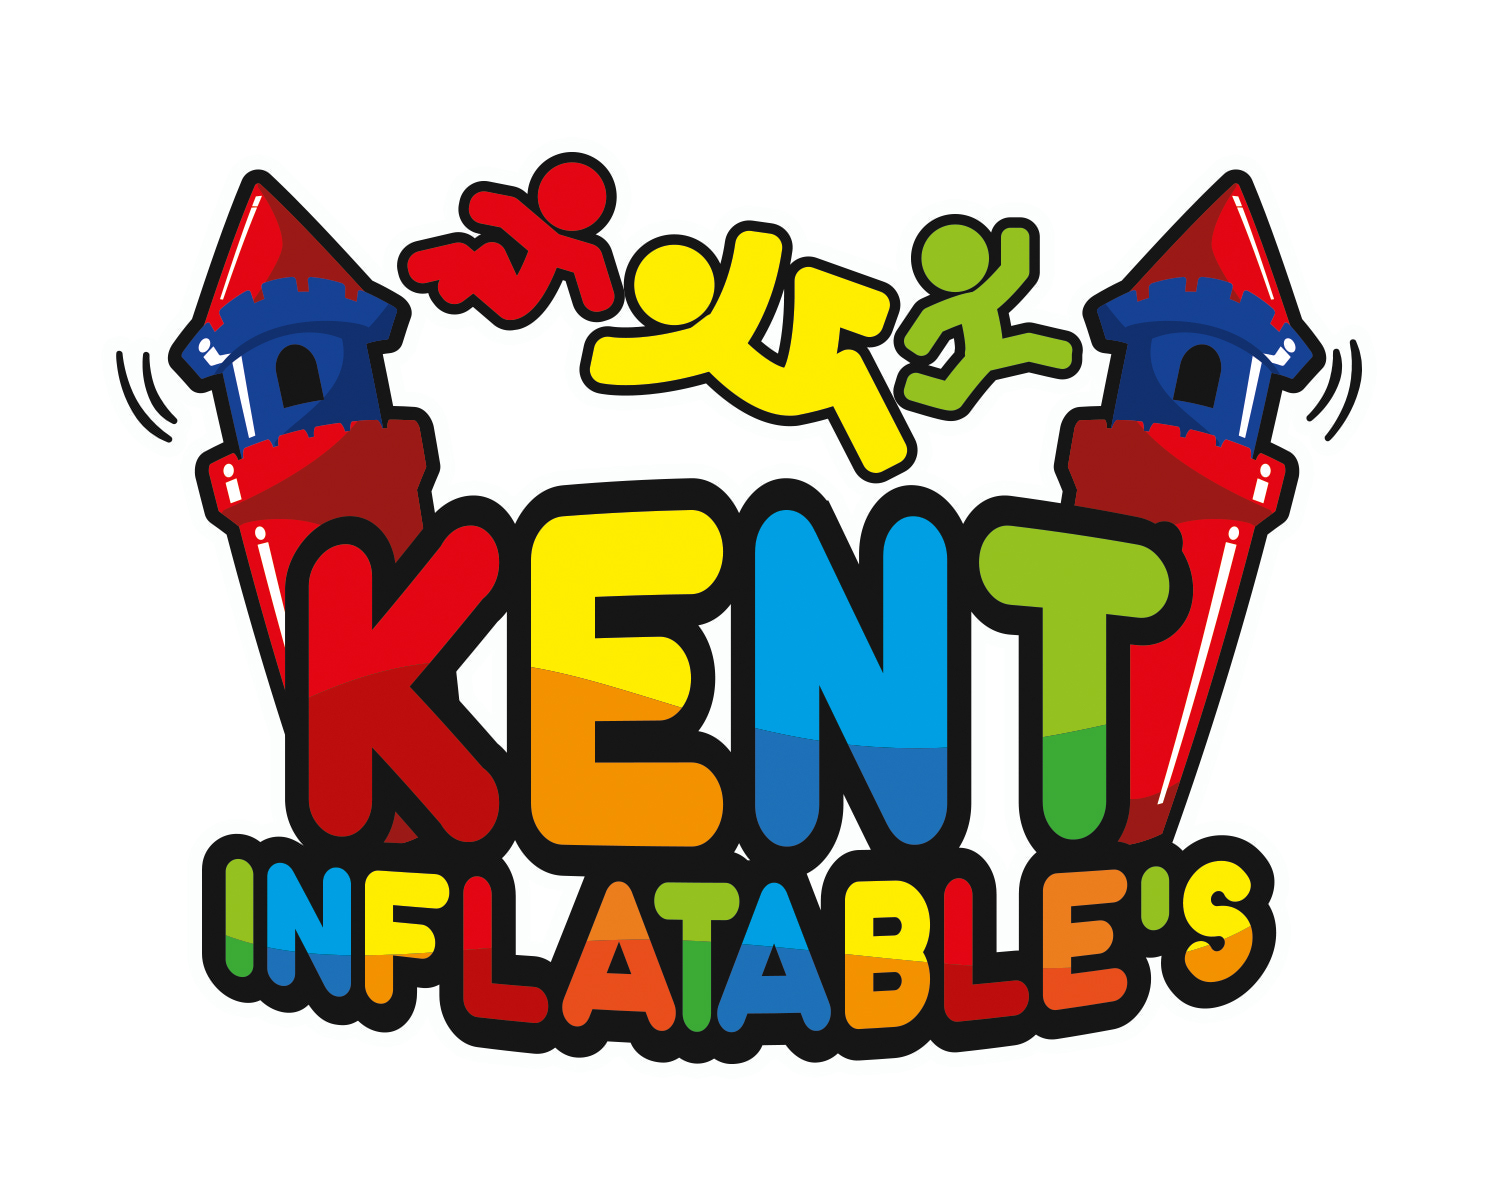 Kent Inflatable's